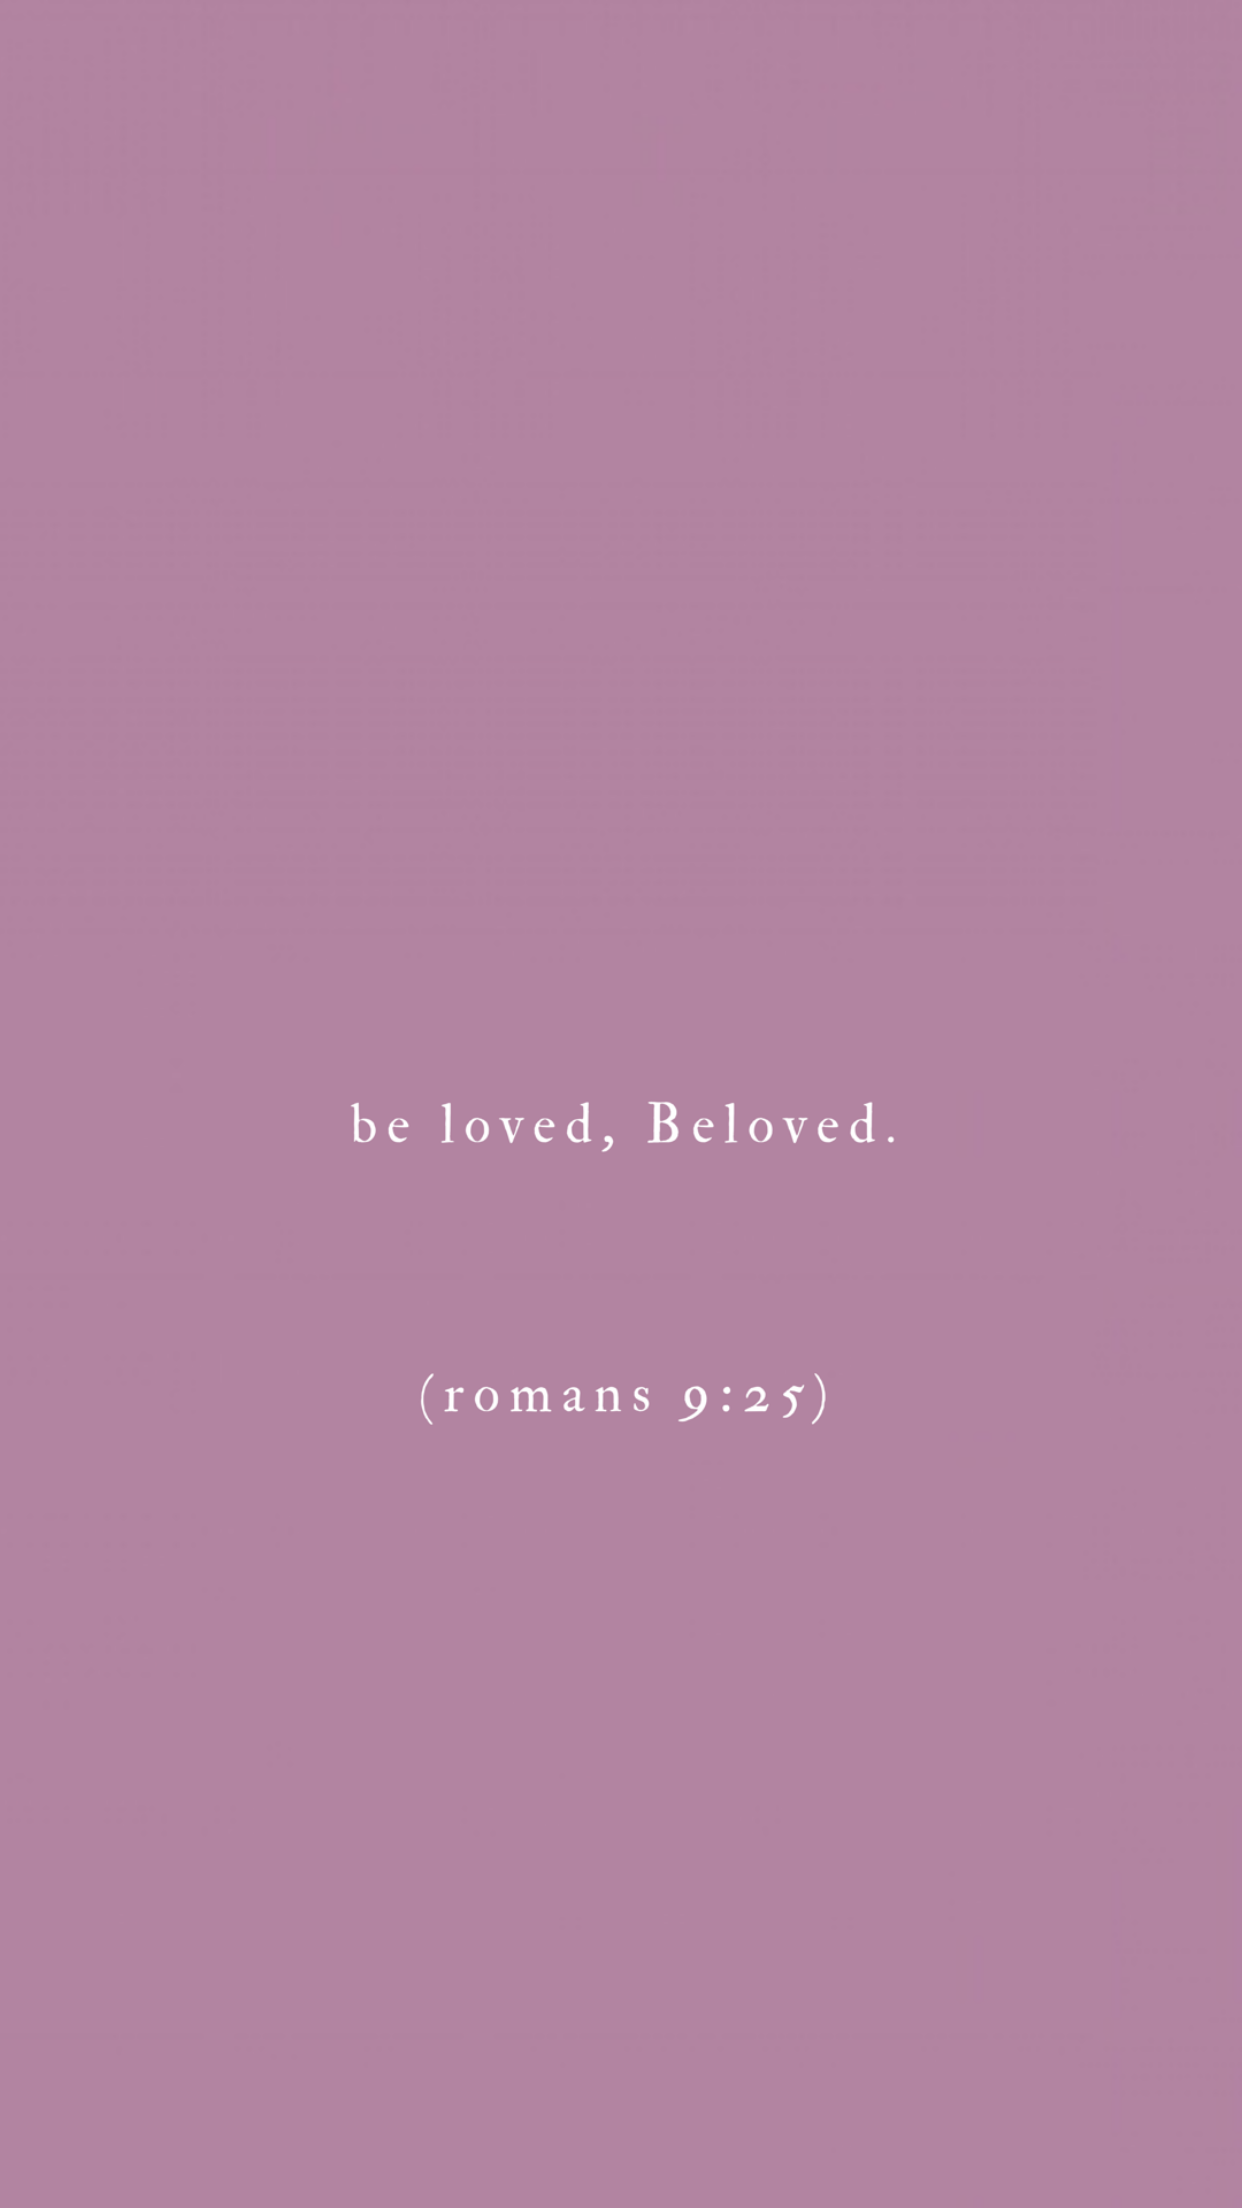 Be Loved BeLoved Romans 9 25 Christian quotes for women